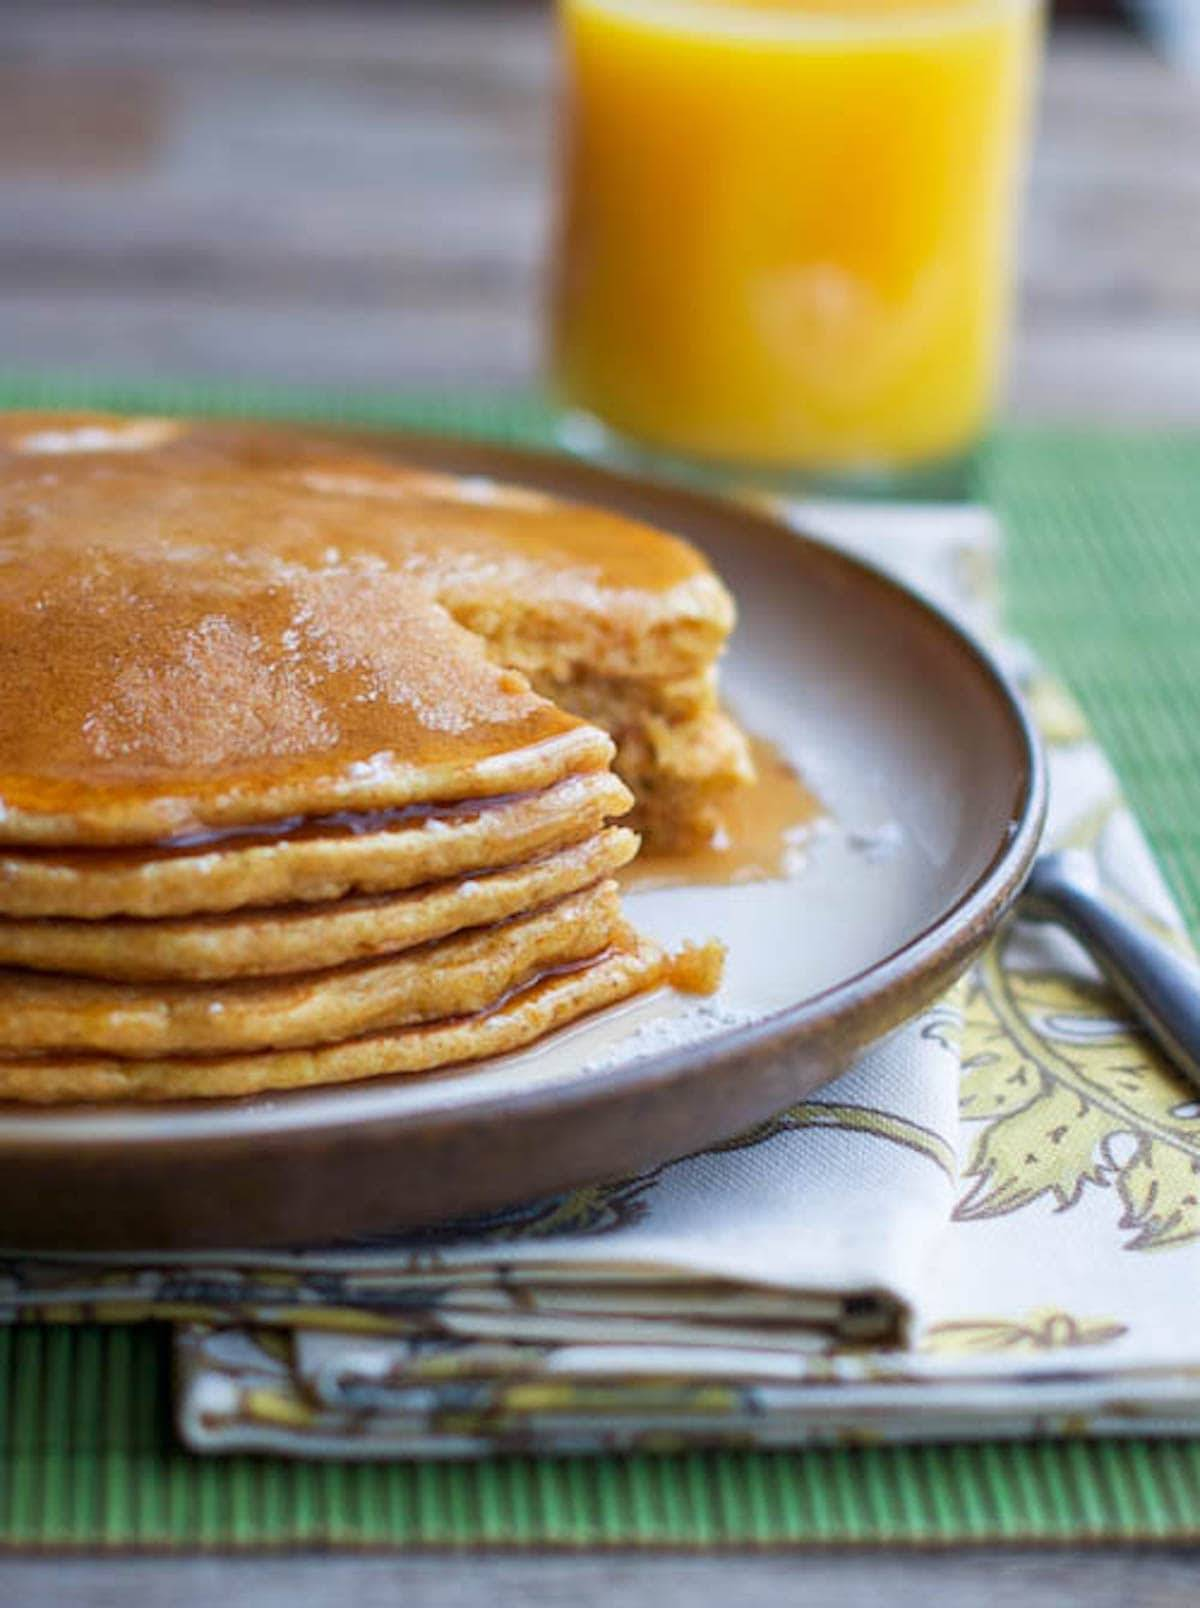 These classic DINNER pancakes are my favorite when we have breakfast for dinner. So soft and fluffy and just begging for maple syrup. | pinchofyum.com